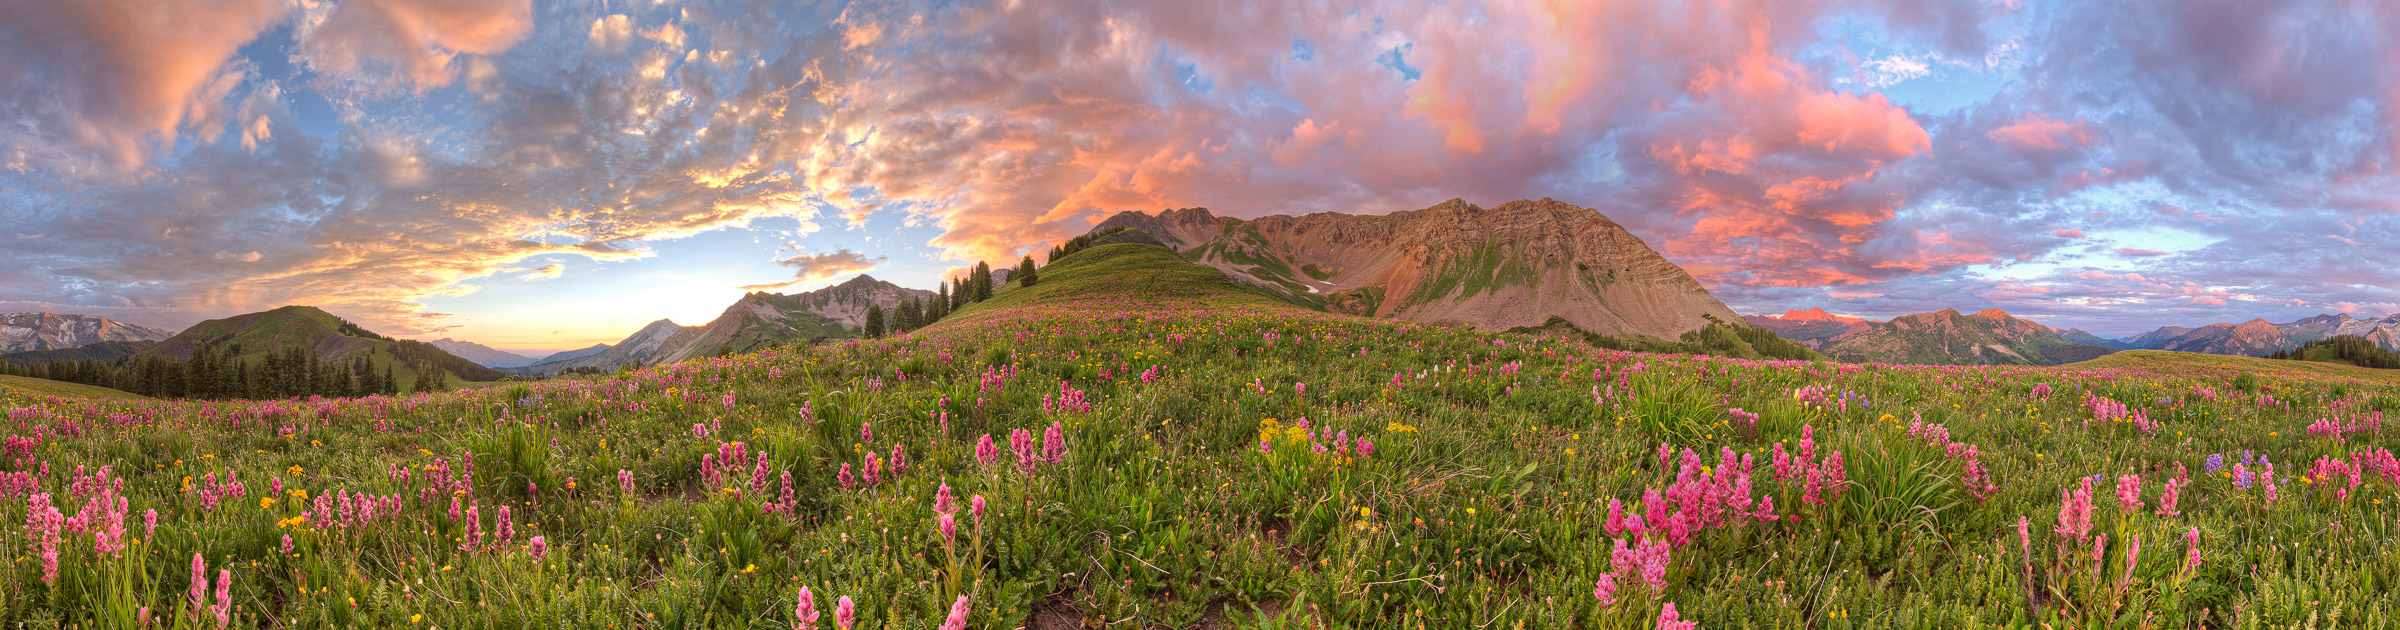 landscape image of a grassy field and beautiful hill | Life Coaching & Counseling | Judy O'Neill | Boulder, CO 80305